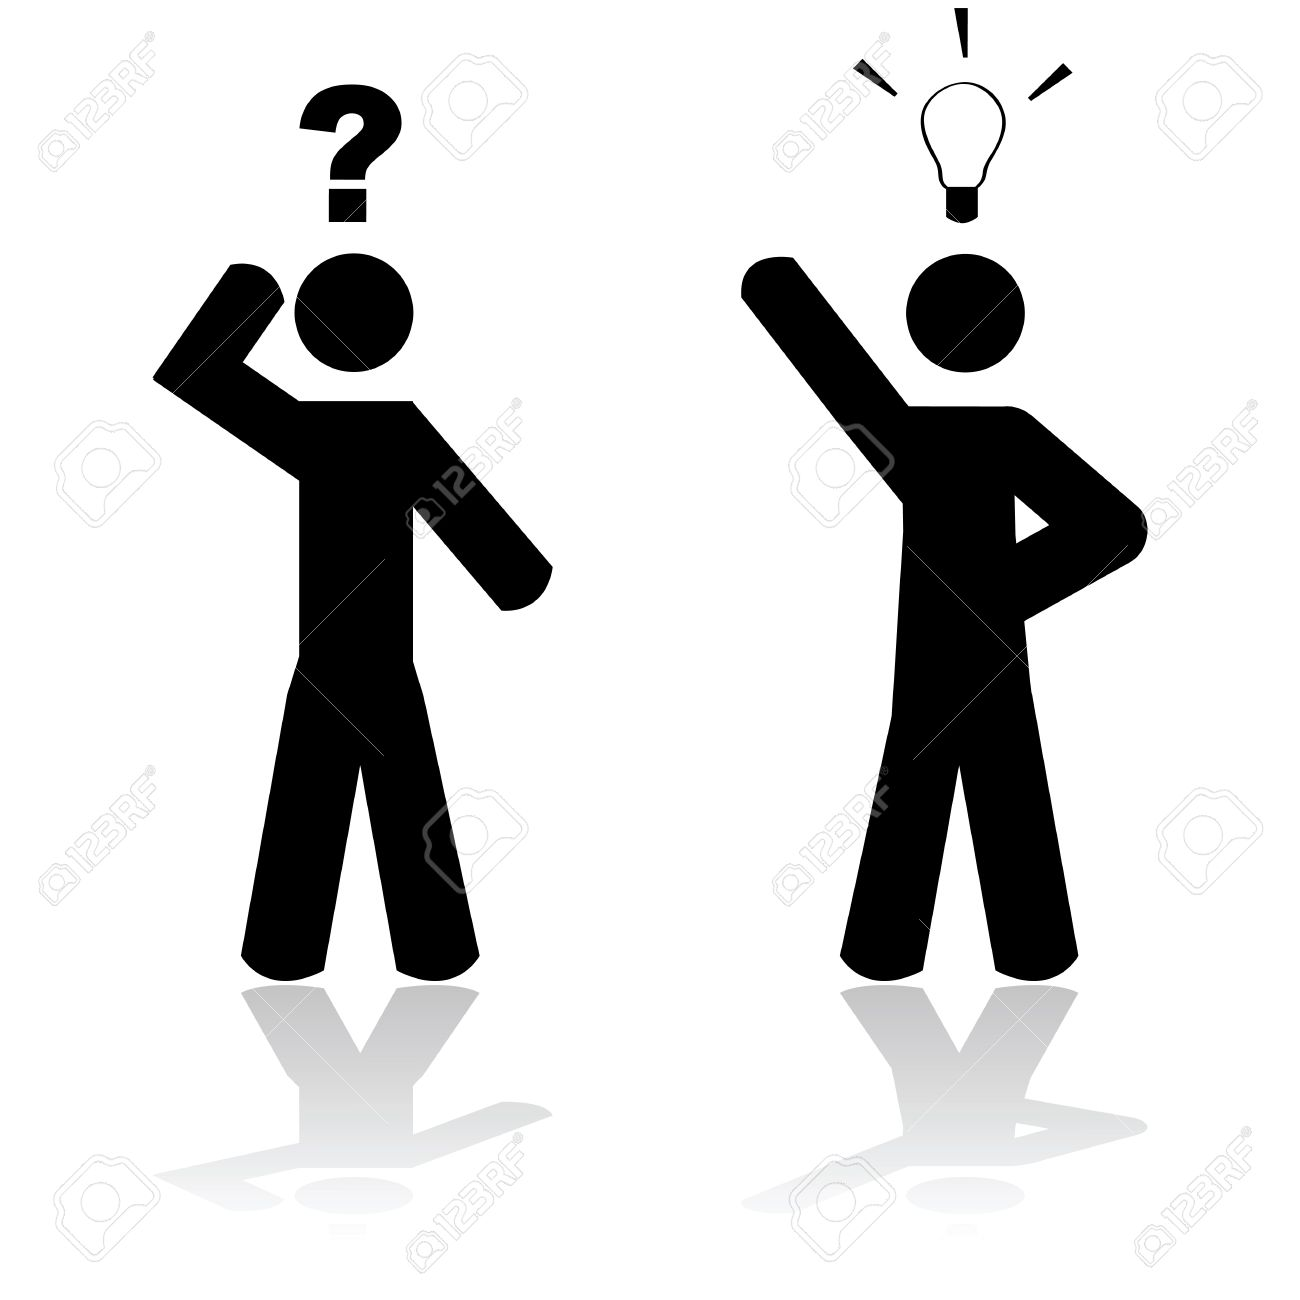 Concept illustration showing a man in doubt and another one having an idea Stock Vector - 27324418